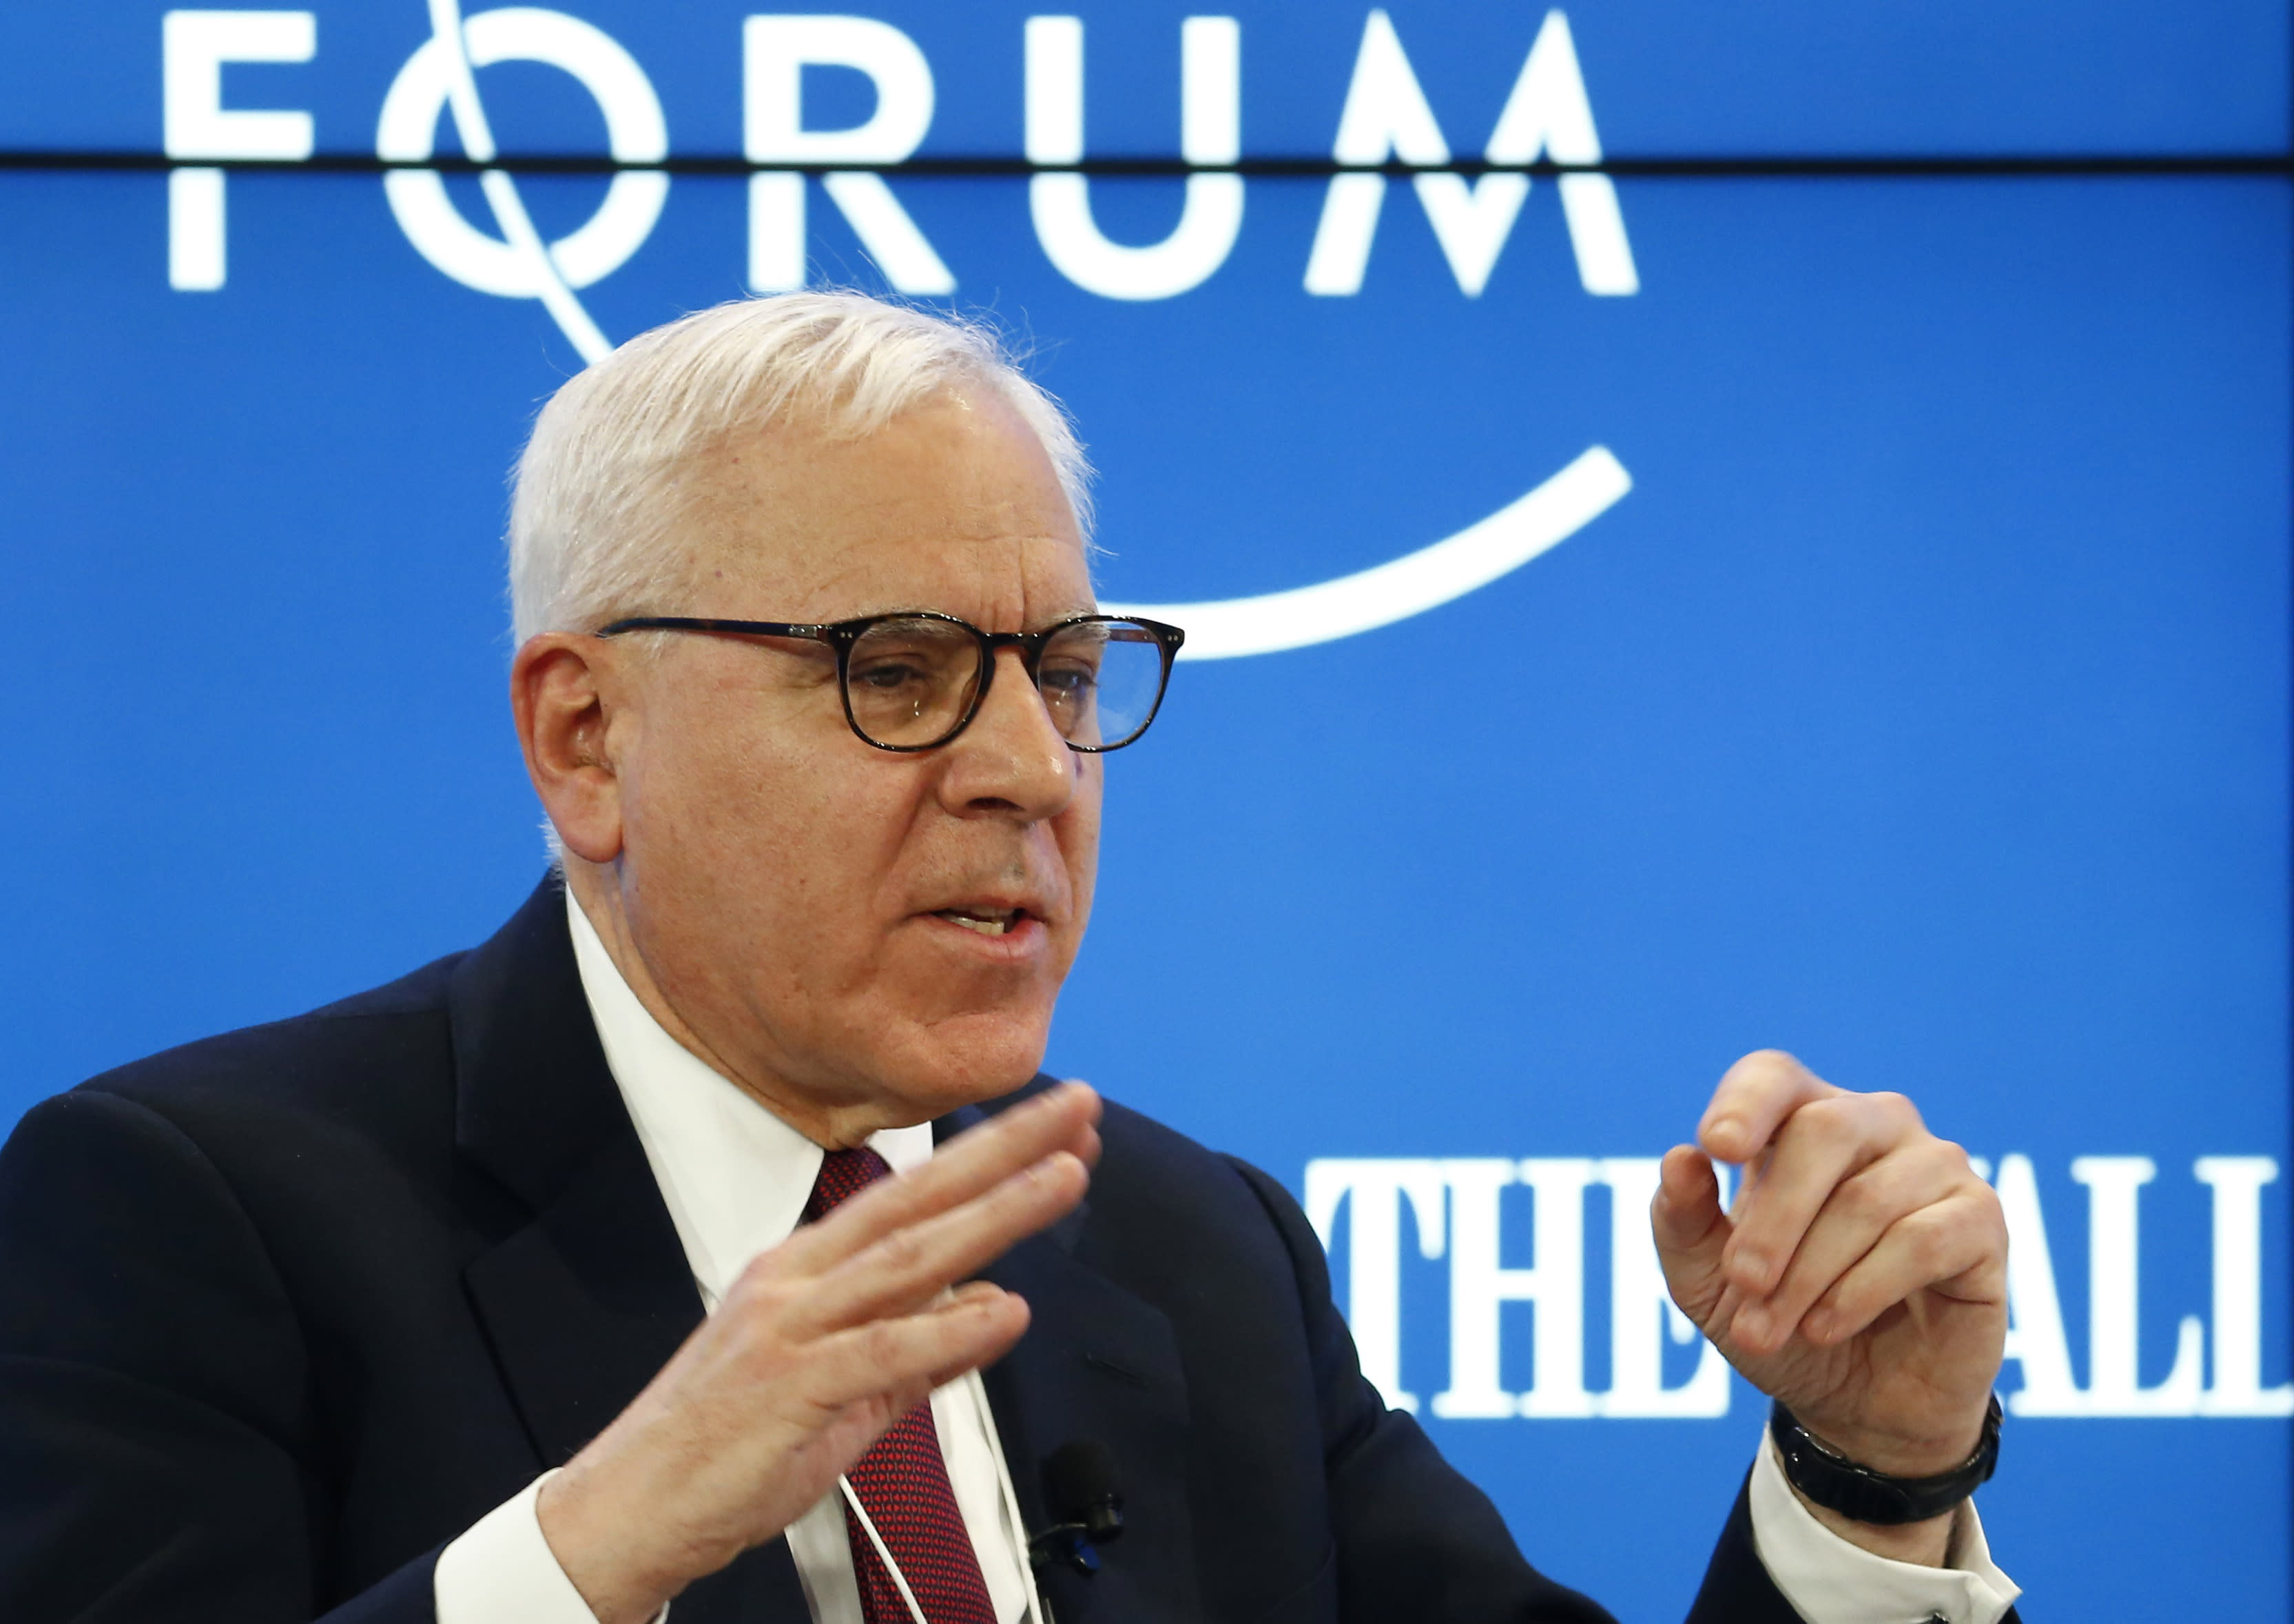 Carlyle's Rubenstein on Trump: 'Most presidents get re-elected'